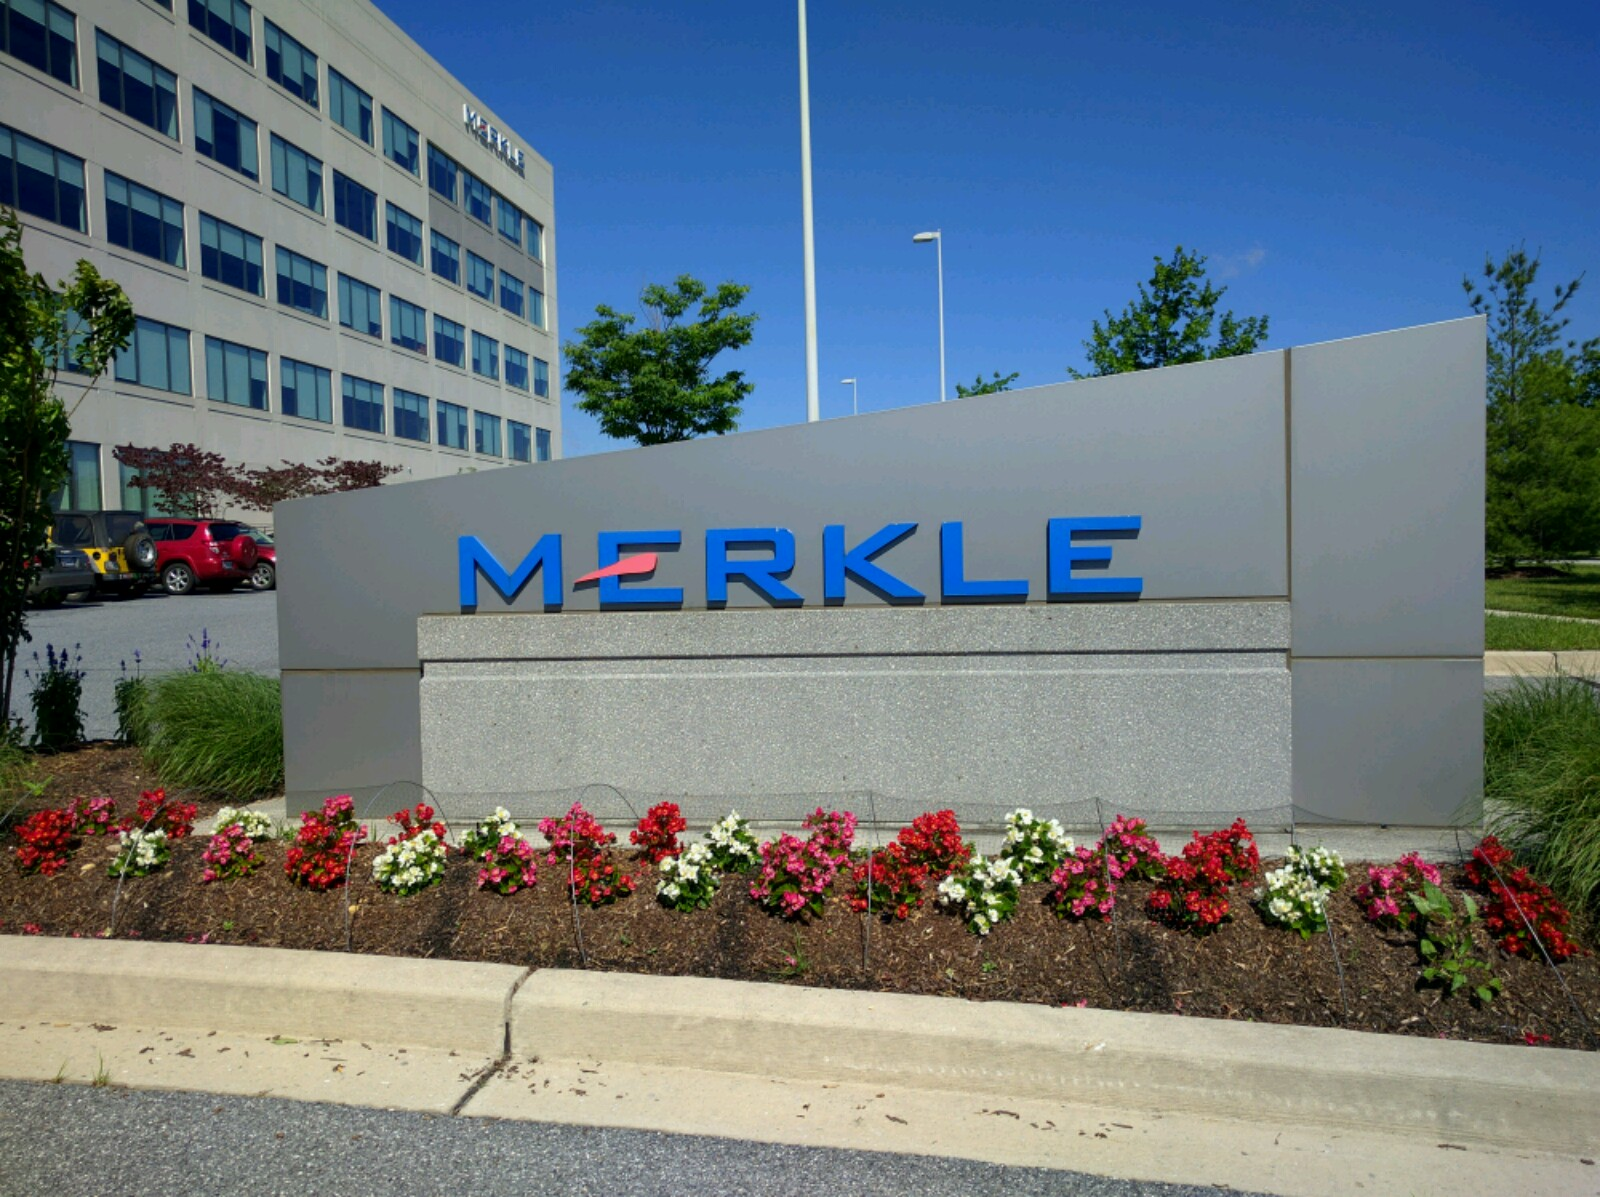 Entrance to Merkle's corporate headquarters in Columbia, Maryland.